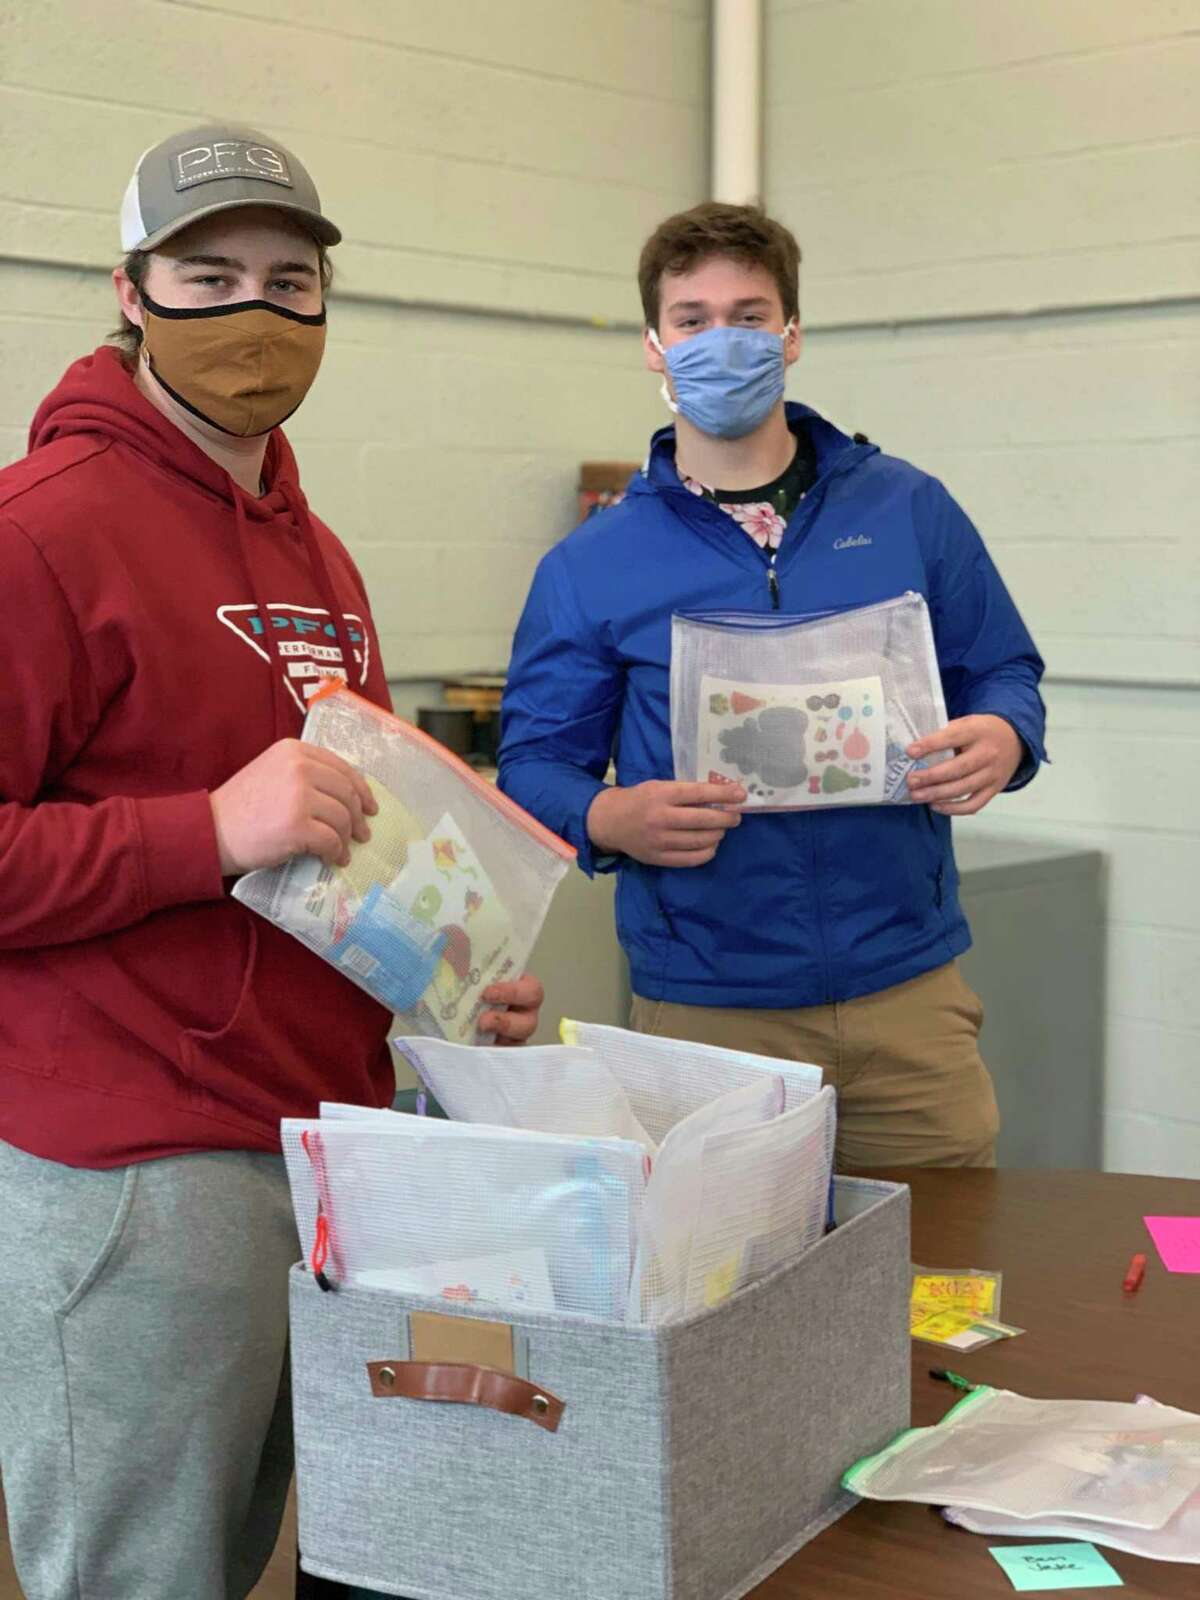 Jake Petrosky (left) and Benjamin Falk of Onekama High School display some completed resource kits on Saturday. (Courtesy photo)